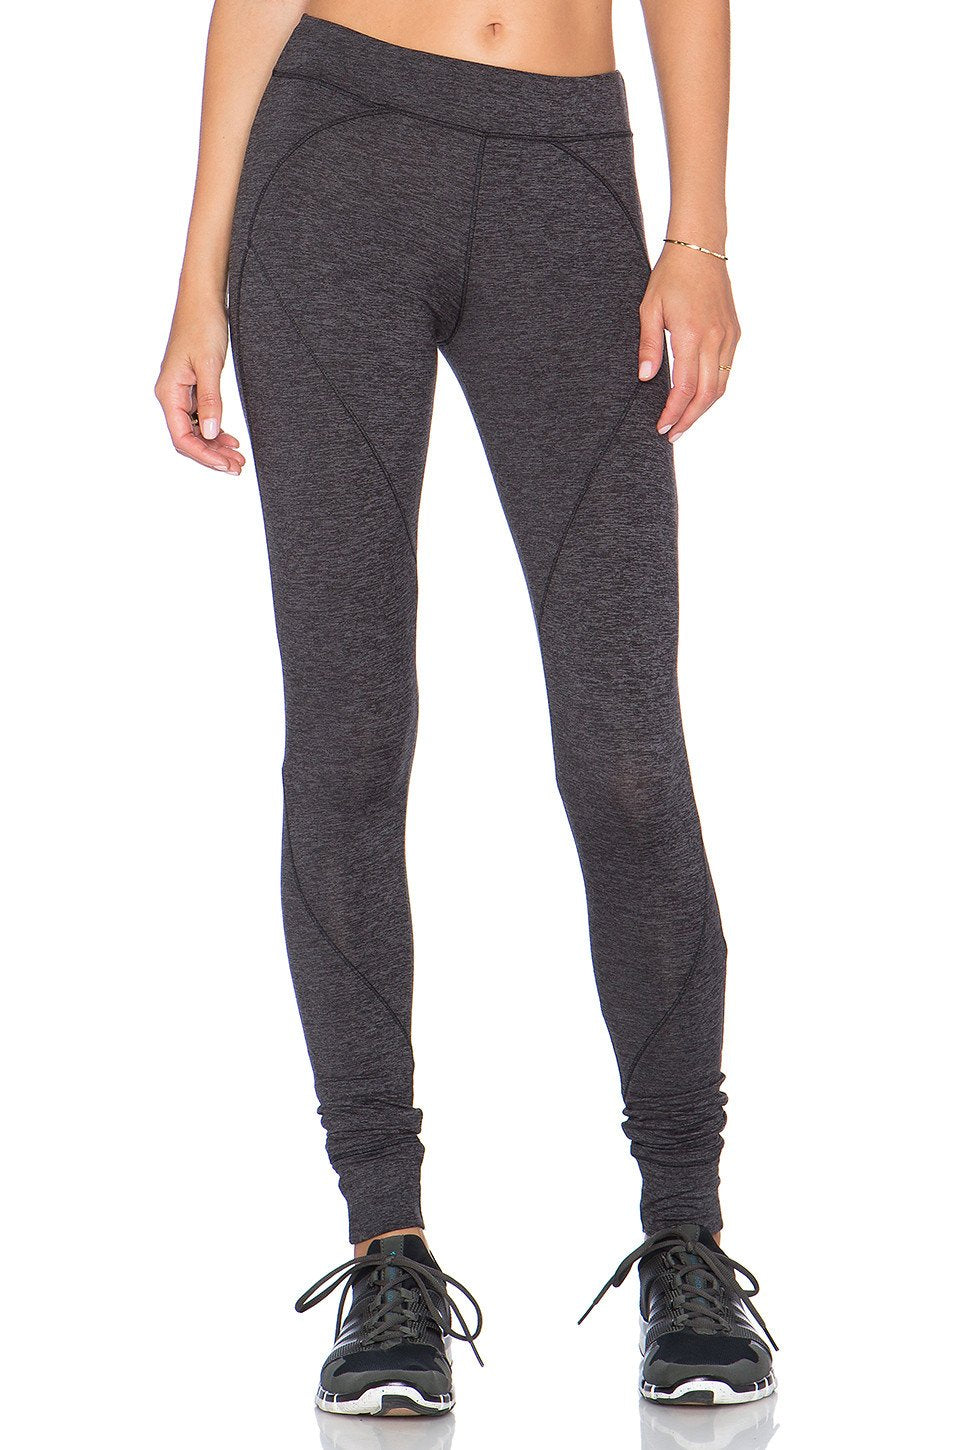 Spacedye Paneled Legging - Kustom Label - 1